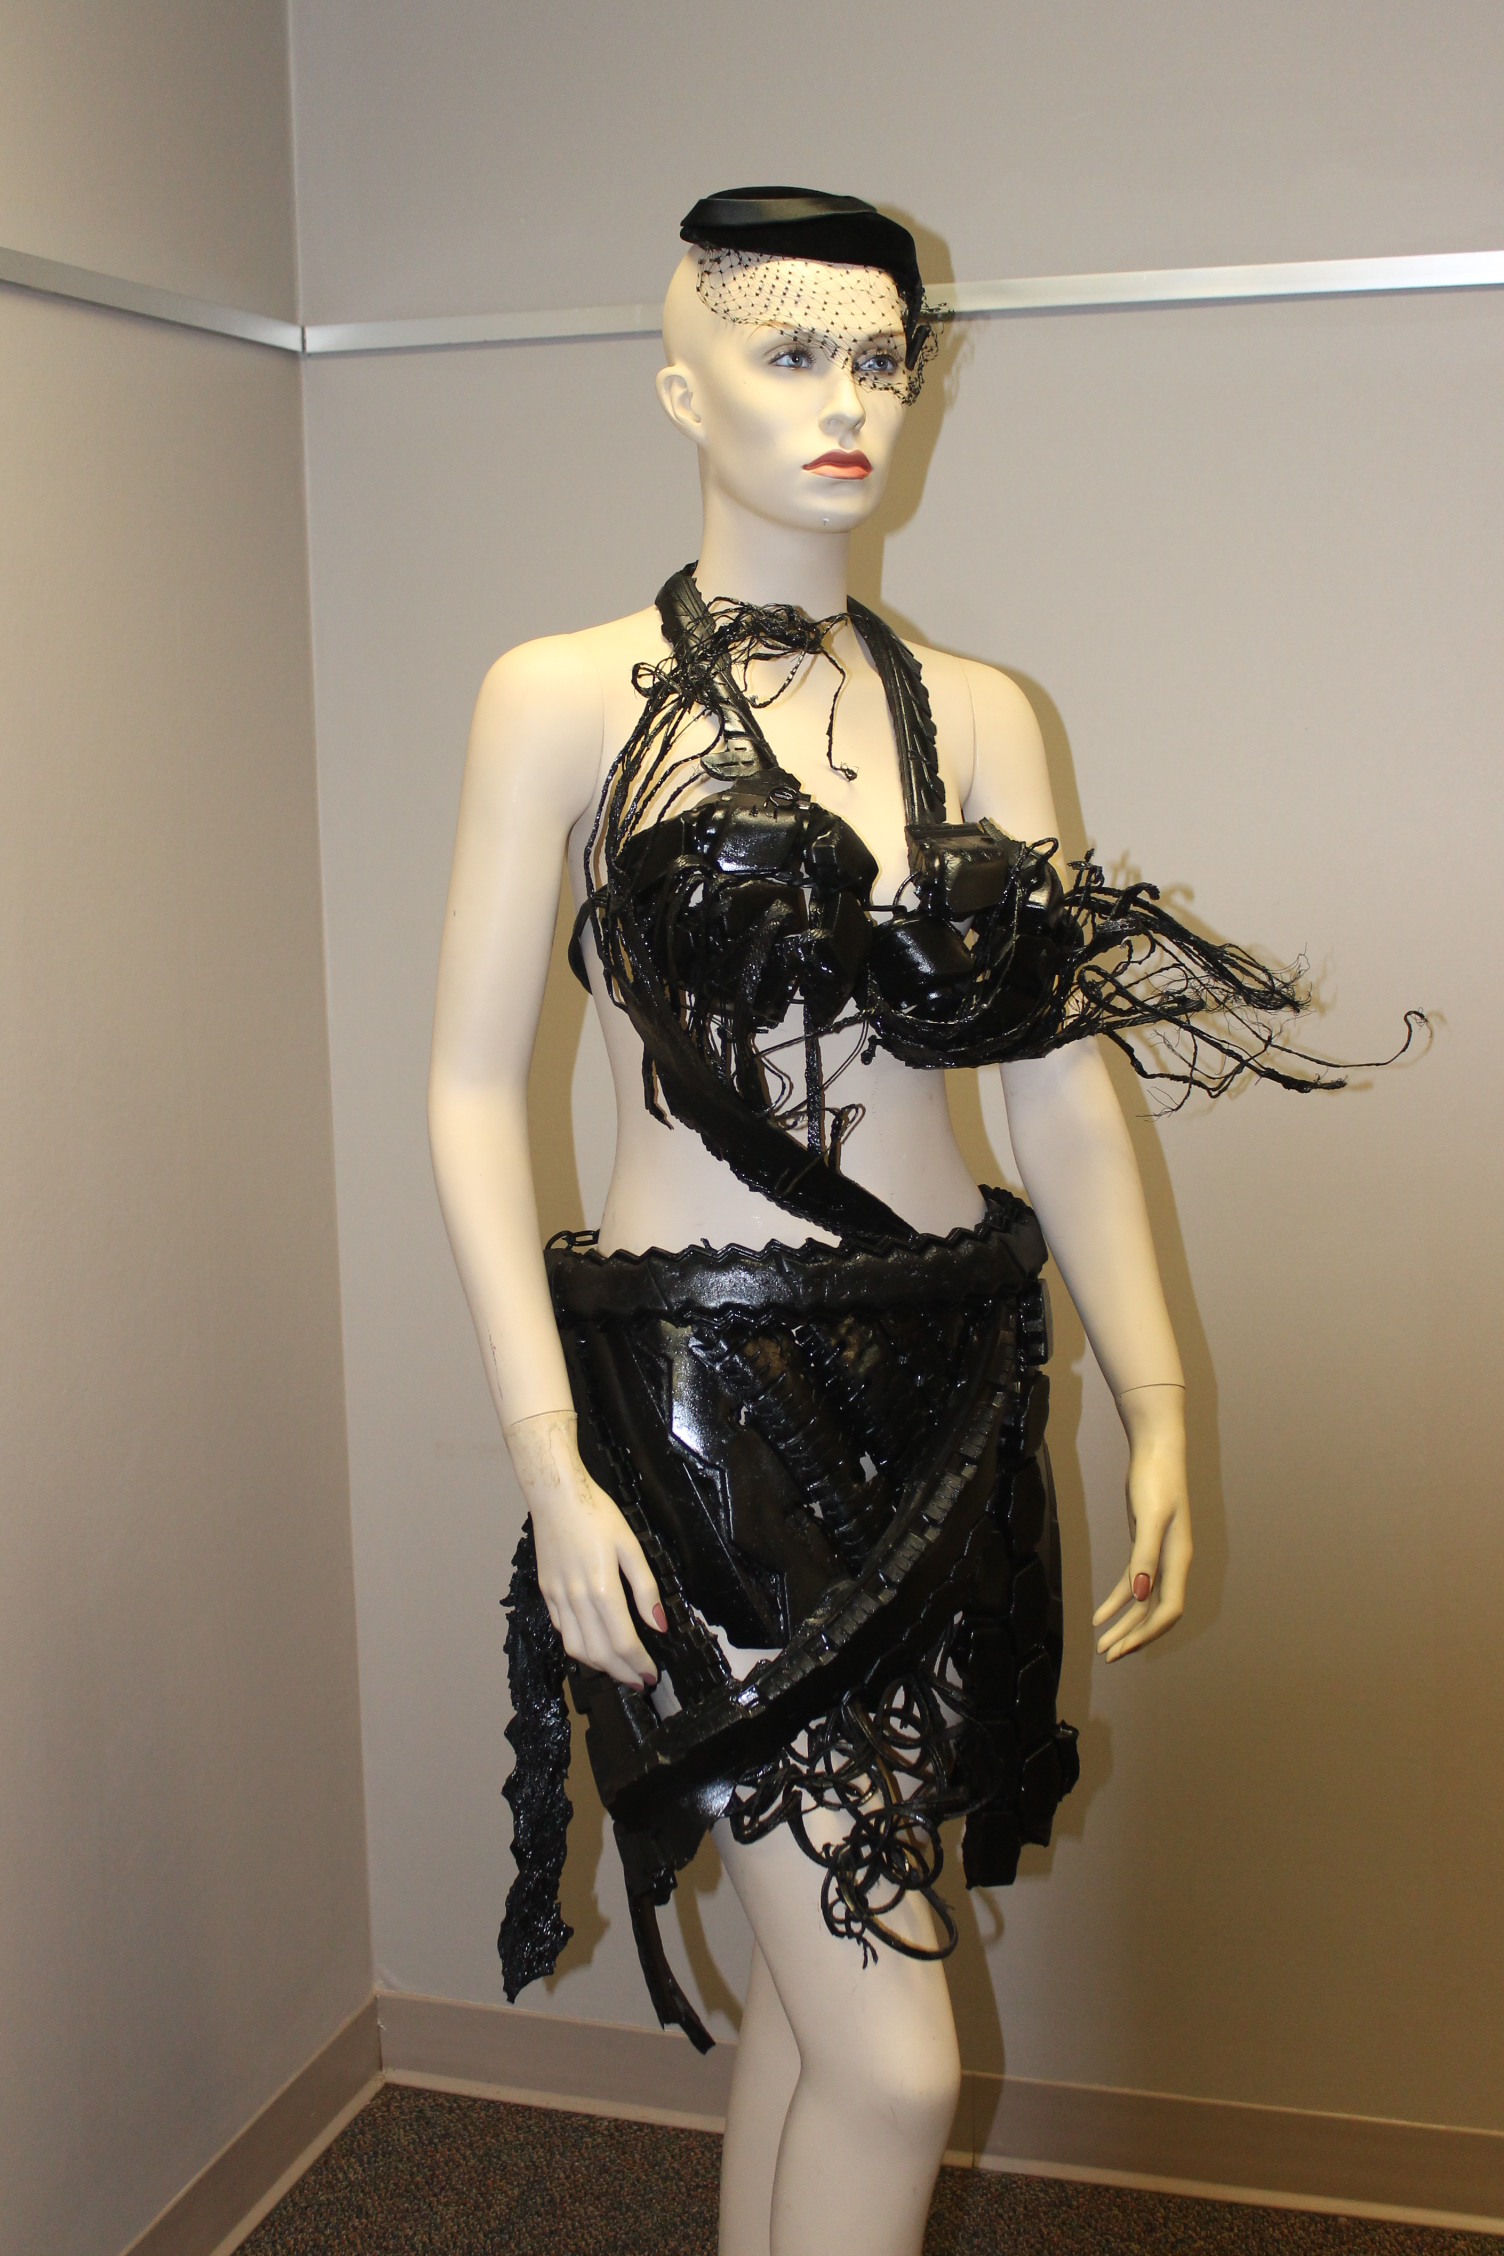 A Dress for Lady Gaga